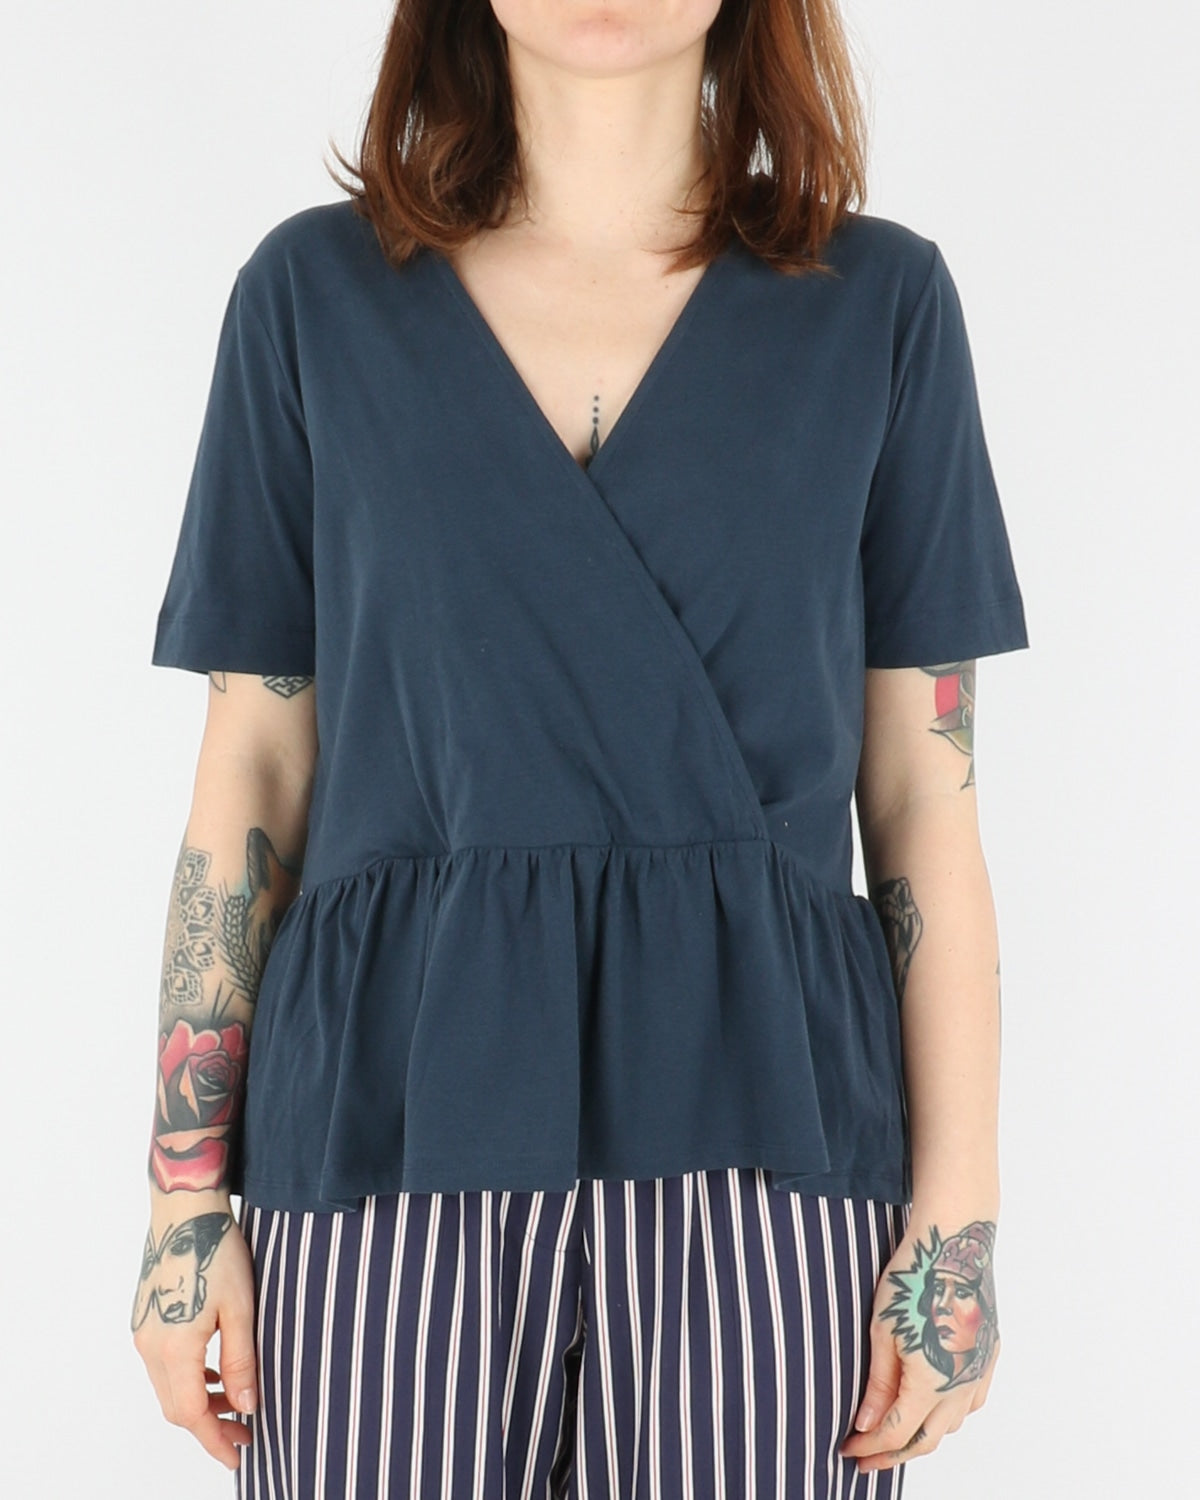 libertine libertine_grace top_navy_1_3